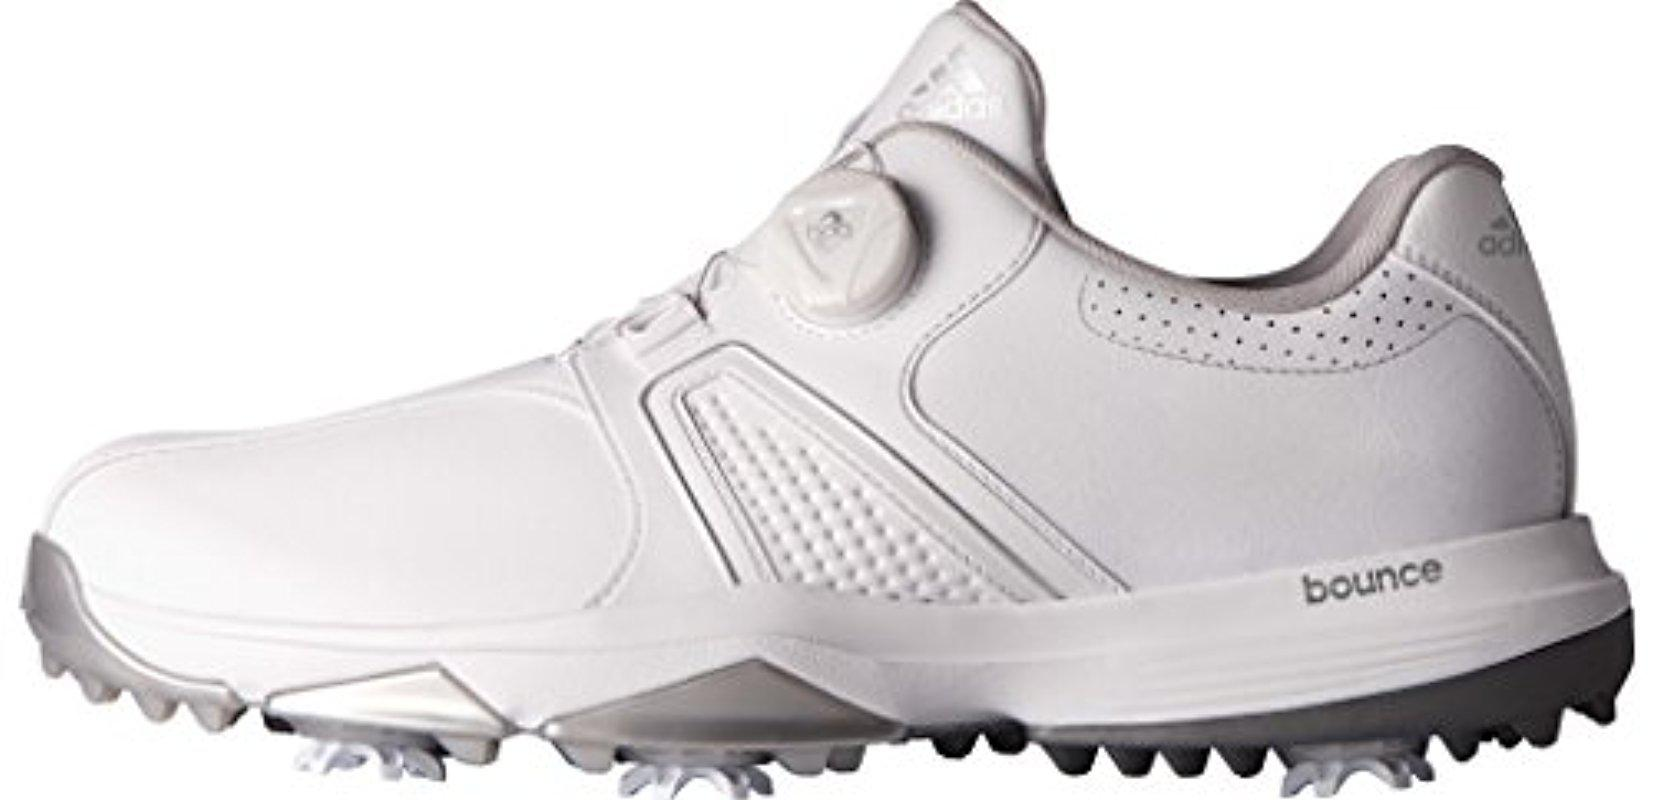 detailed look 503ba ab969 Lyst - Adidas 360 Traxion Boa Golf Shoe in White for Men